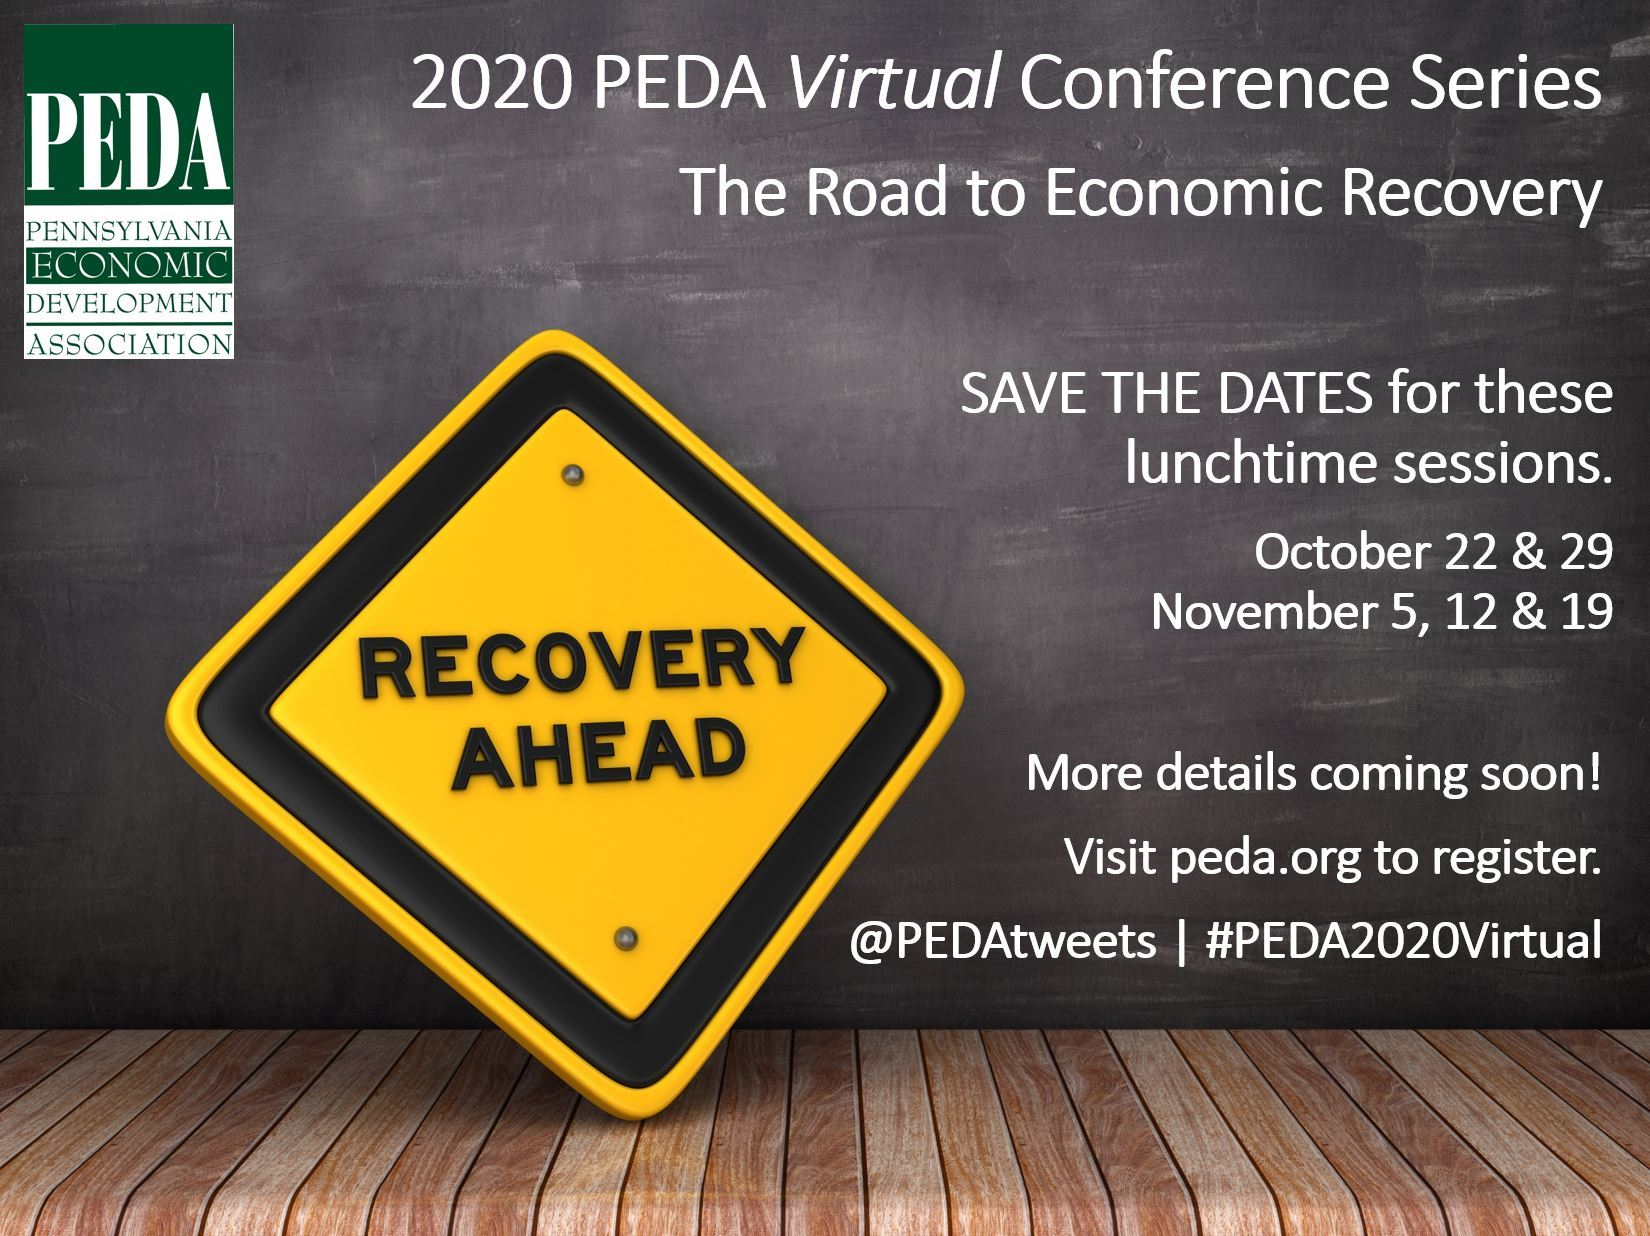 This image for the 2020 PEDA Virtual Conference Series provides basic event information, including dates, etc.